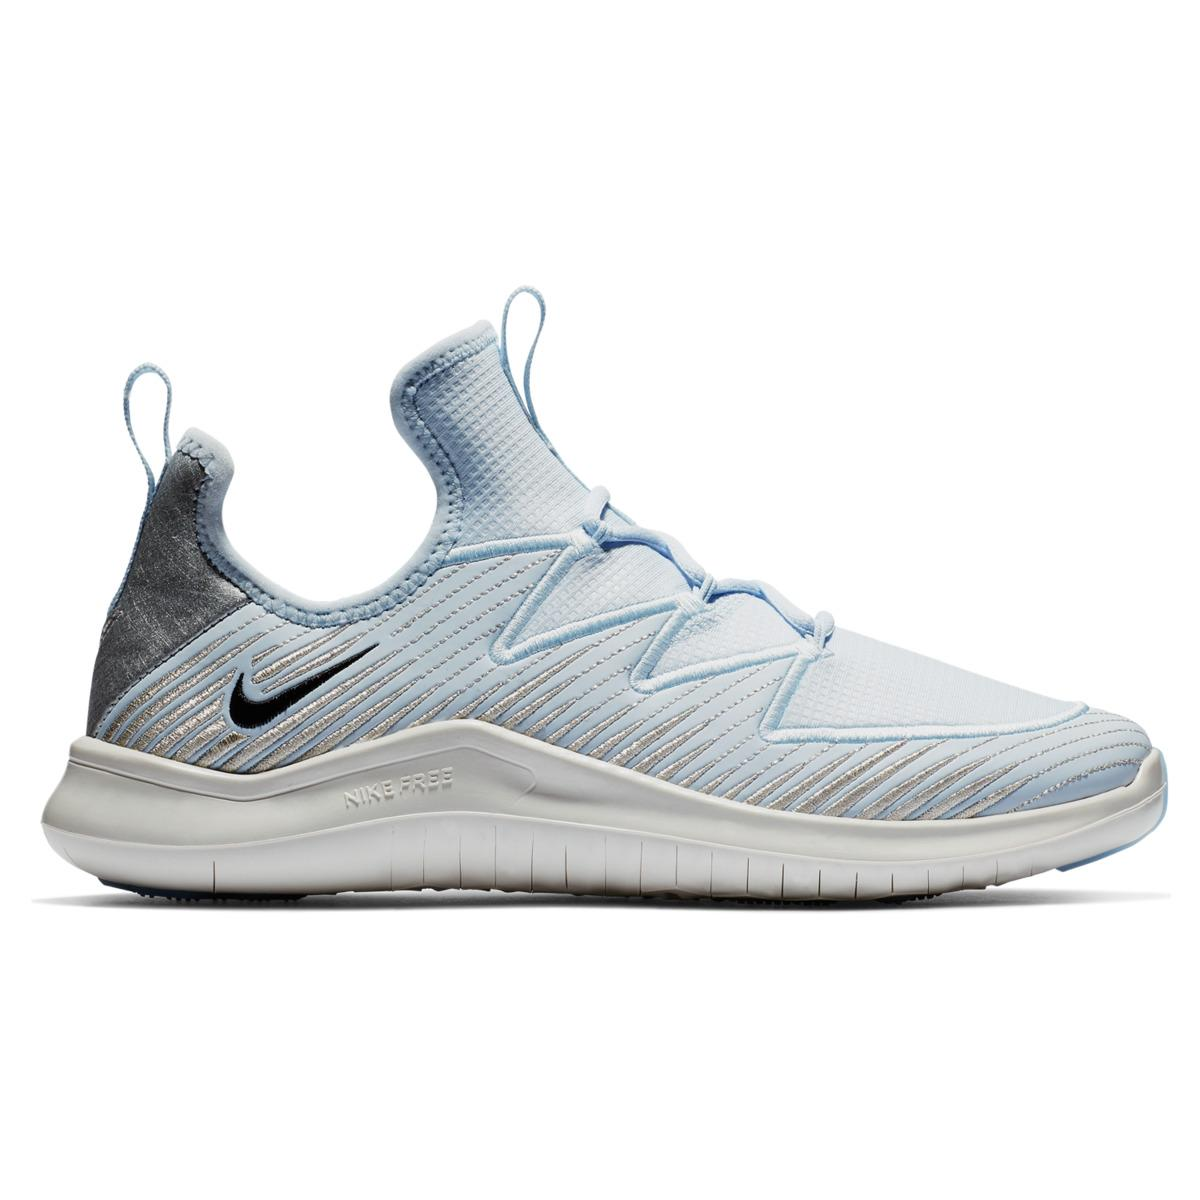 7c7ca981d9cab Nike Free Tr 9 Metallic Fitness cross Training Shoes in Blue - Lyst